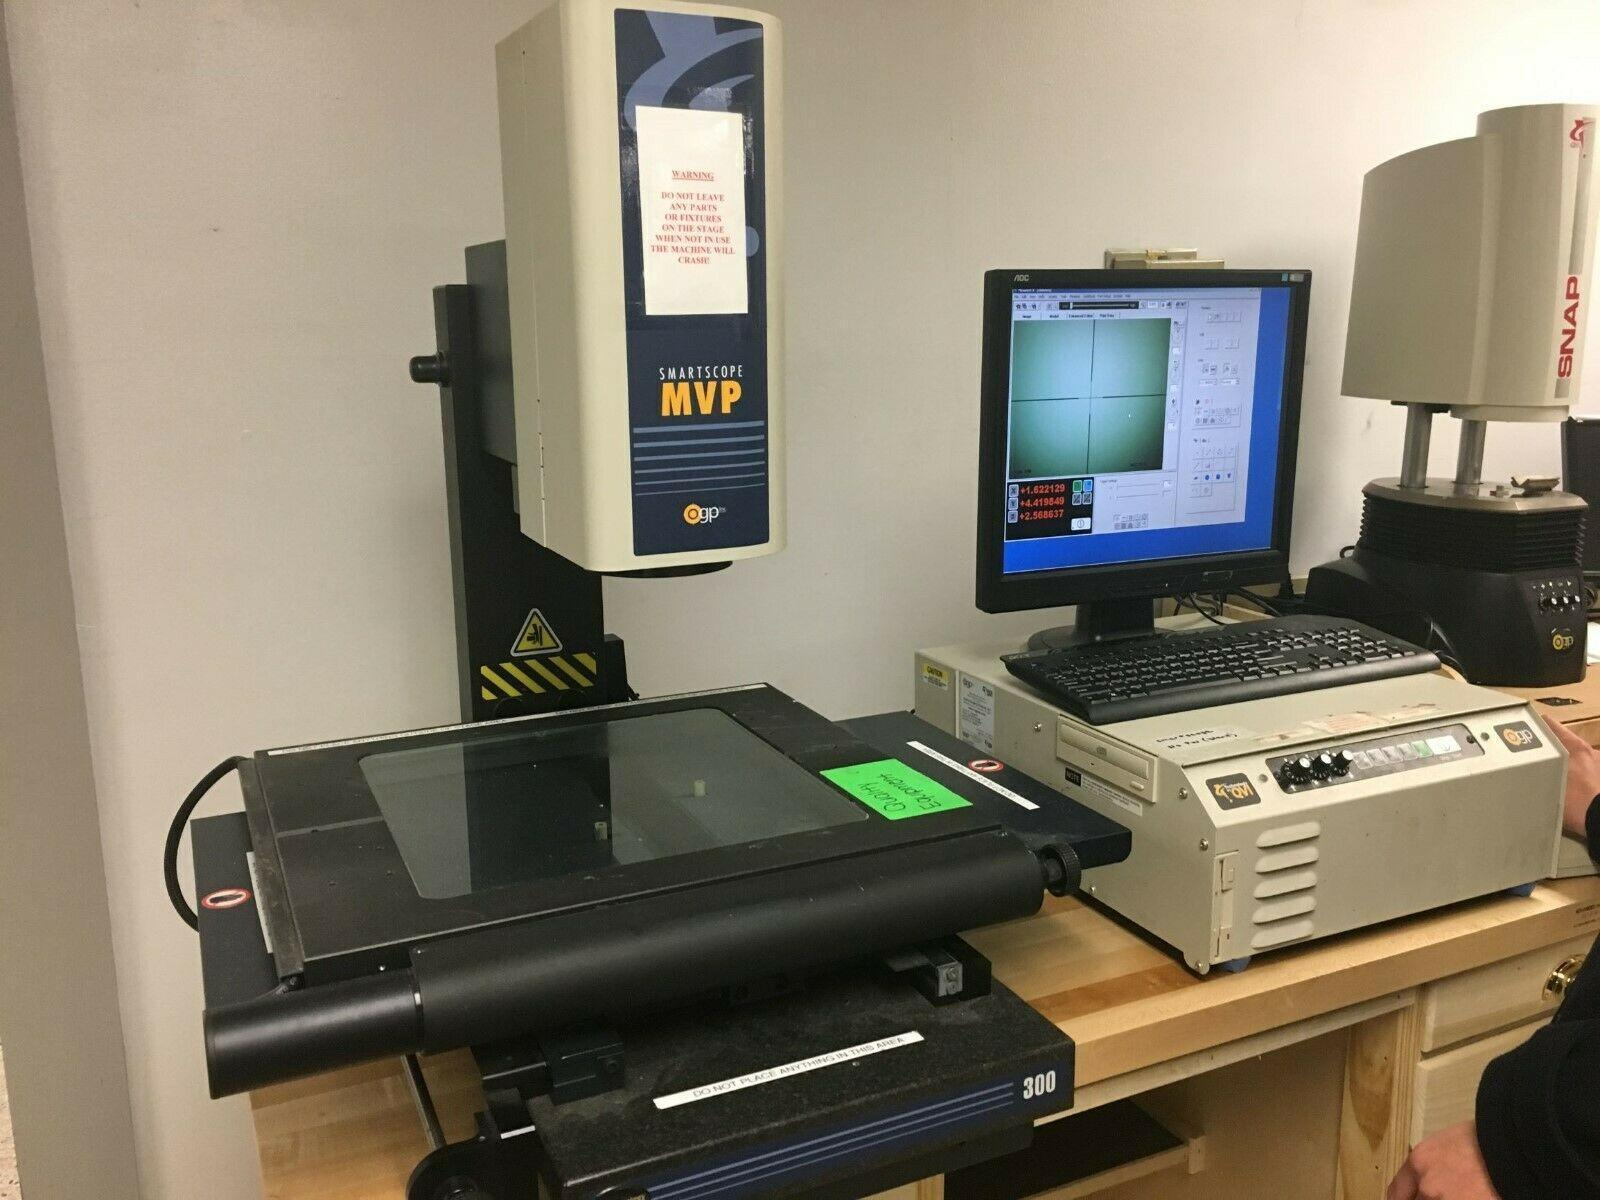 OGP Smartscope 300 MVP Automated Video Measuring Machine, S/N MVR3001227, New 2009.